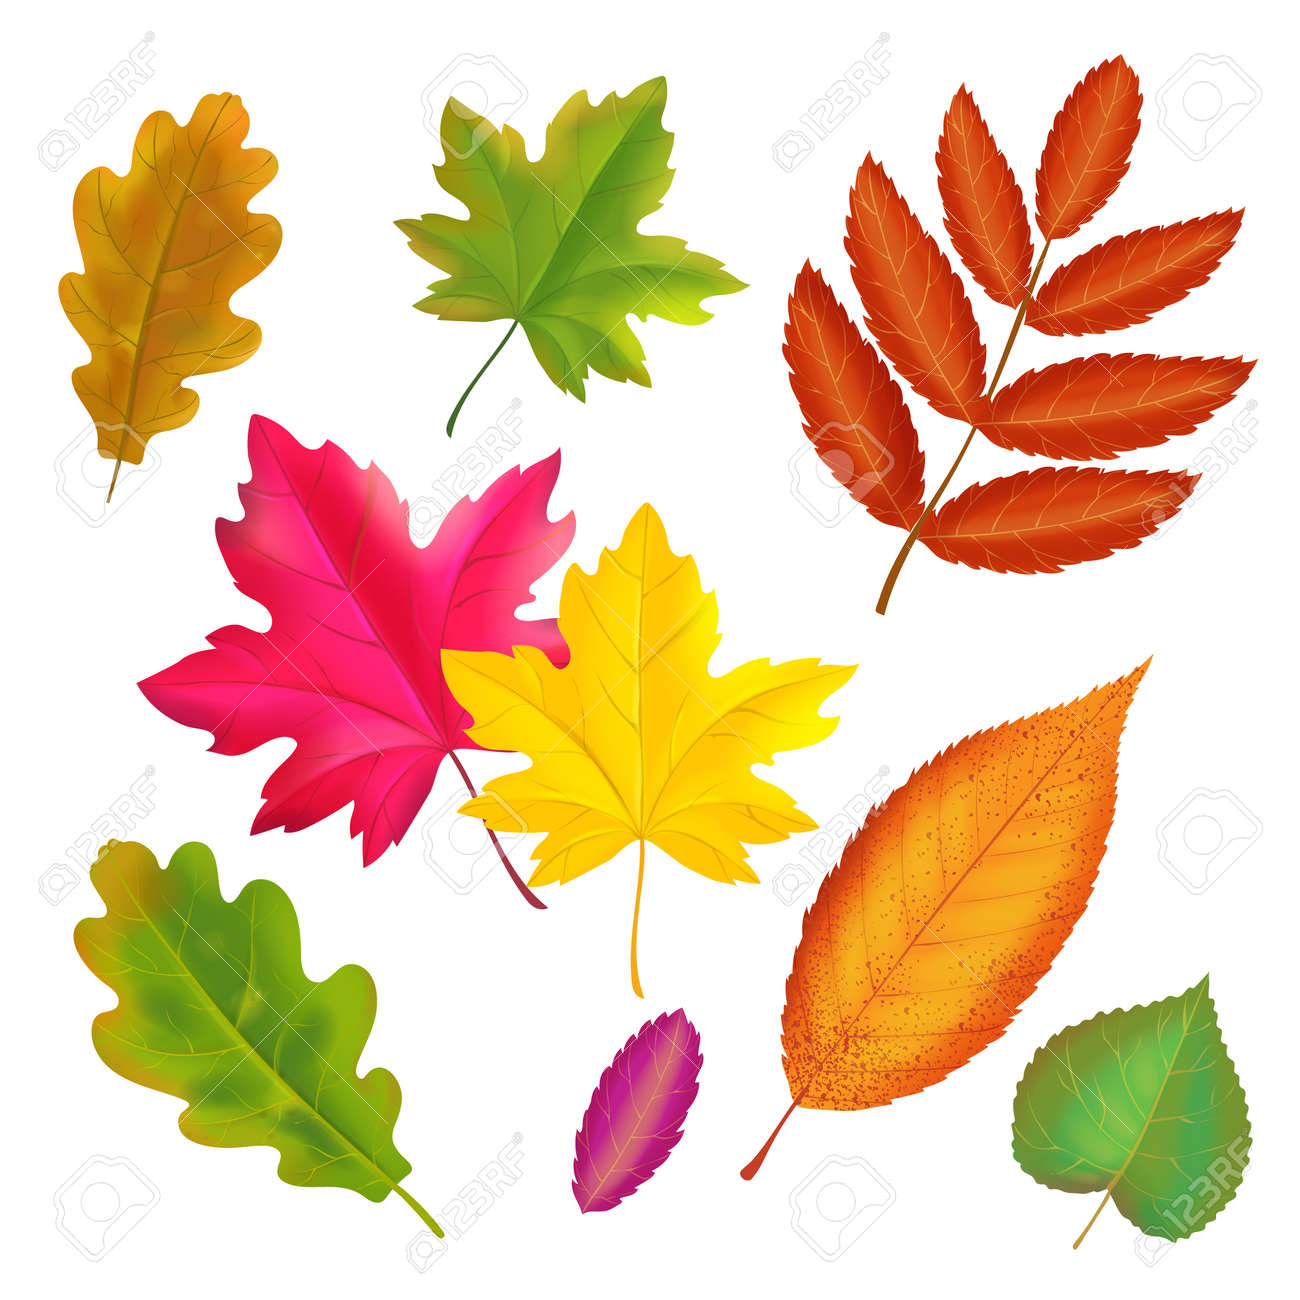 Set of colorful autumn leaves. Vector realistic fall leaf collection. Maple, oak, rowan yellow and red leaves illustration - 158006810